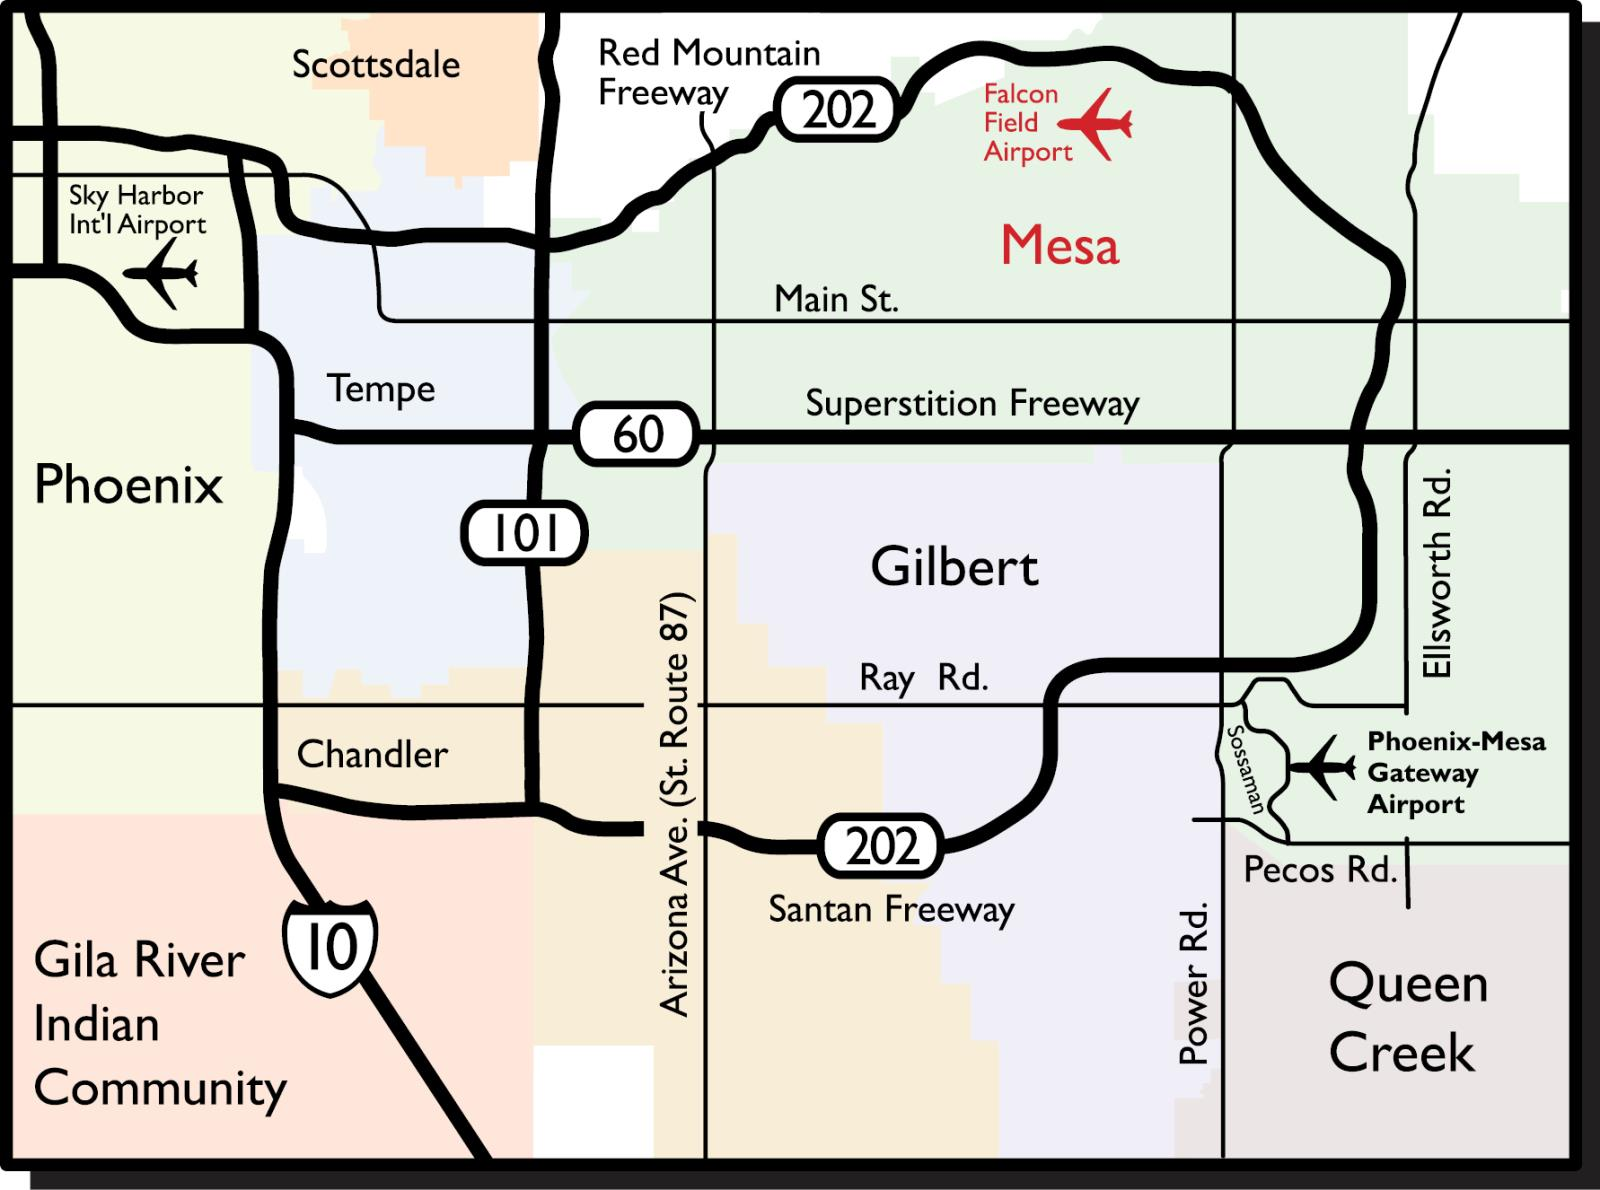 Maps & Directions | Falcon Field Airport Directions From And To With Map on